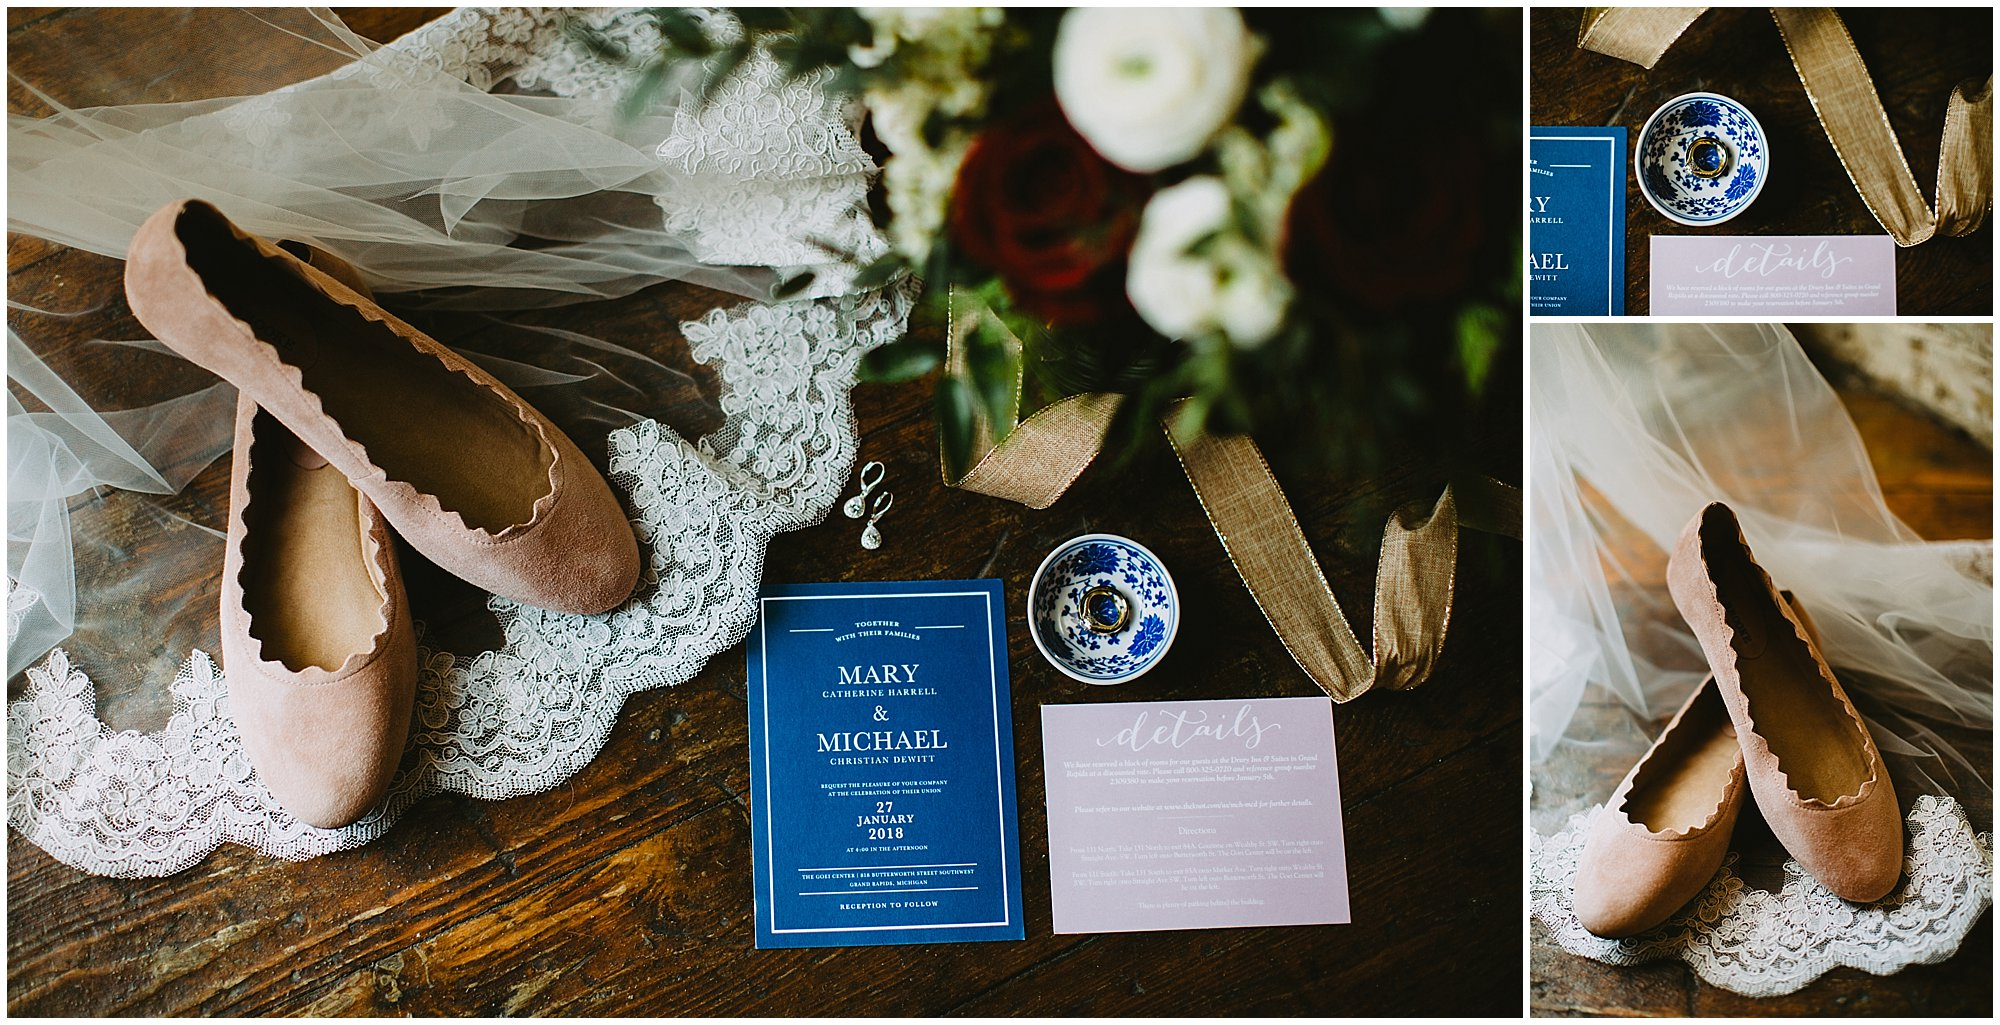 Wedding invitation flatlay Goei Center Grand Rapids